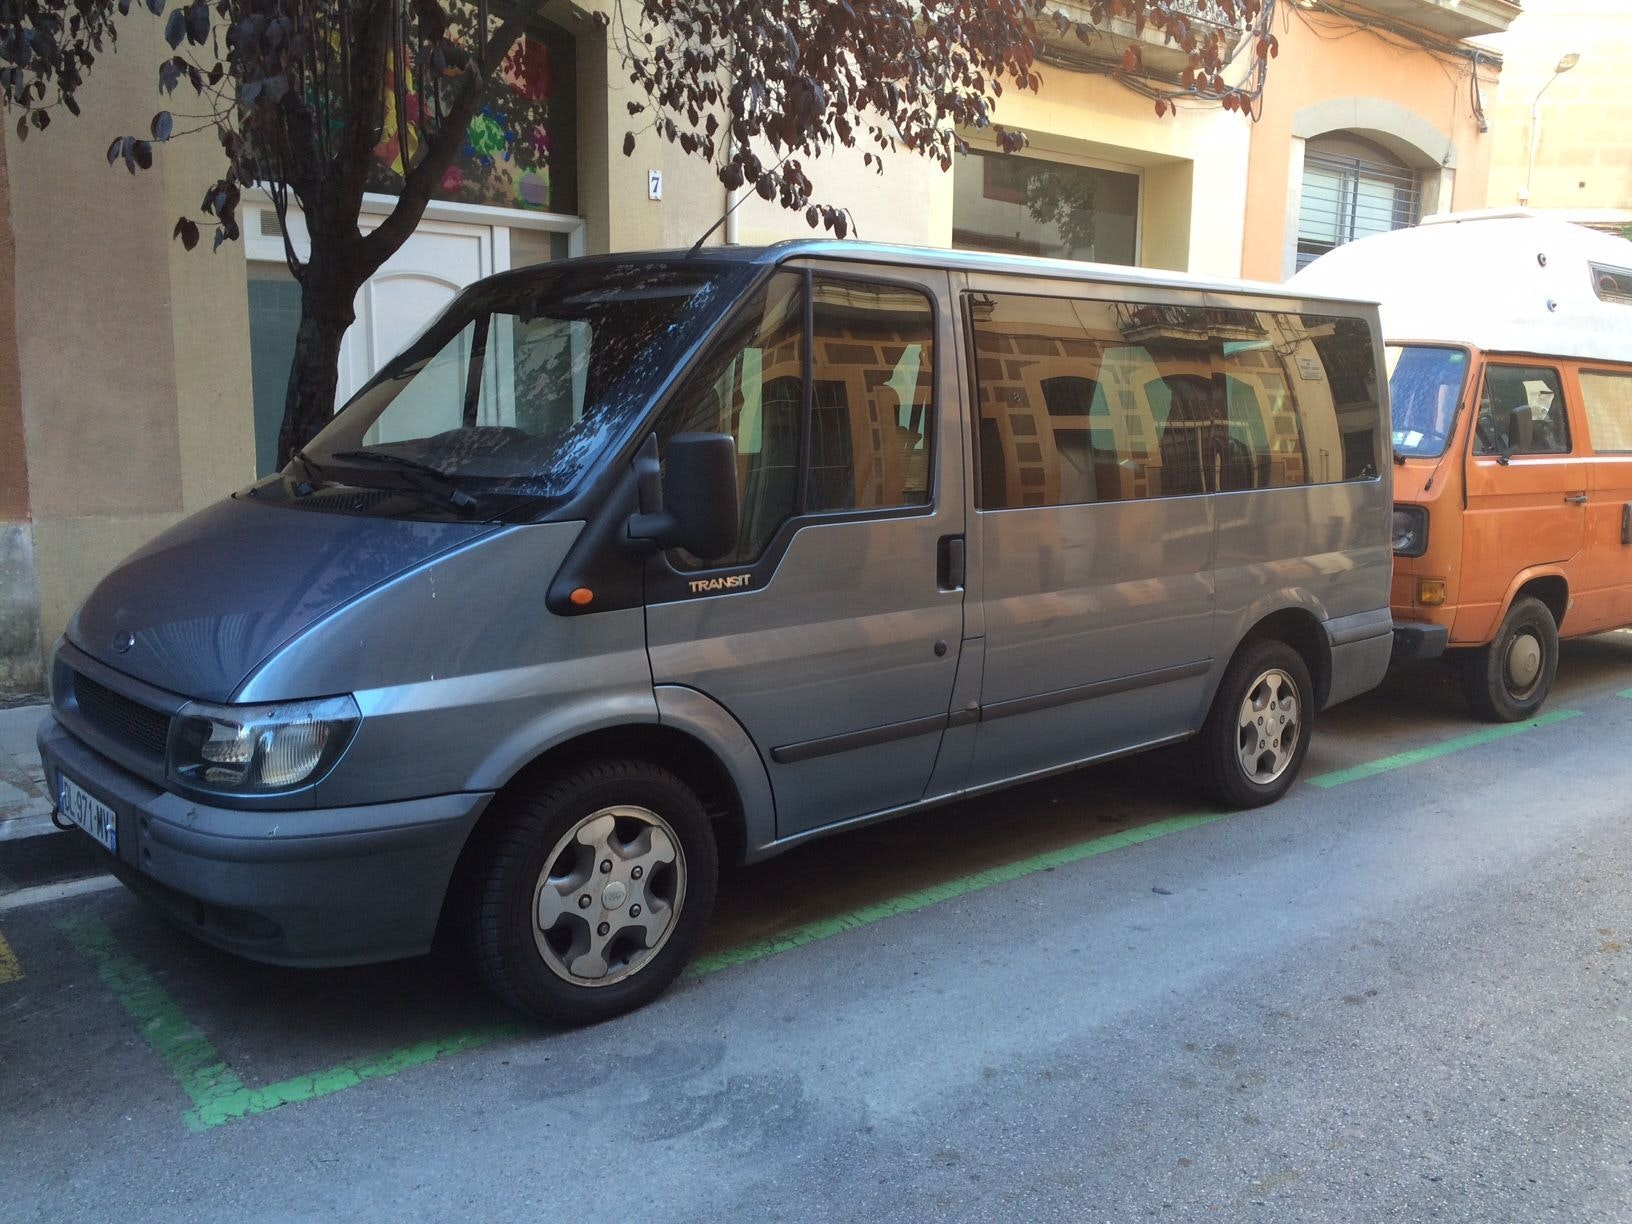 Ford Transit, 2001, Diesel, 7 places